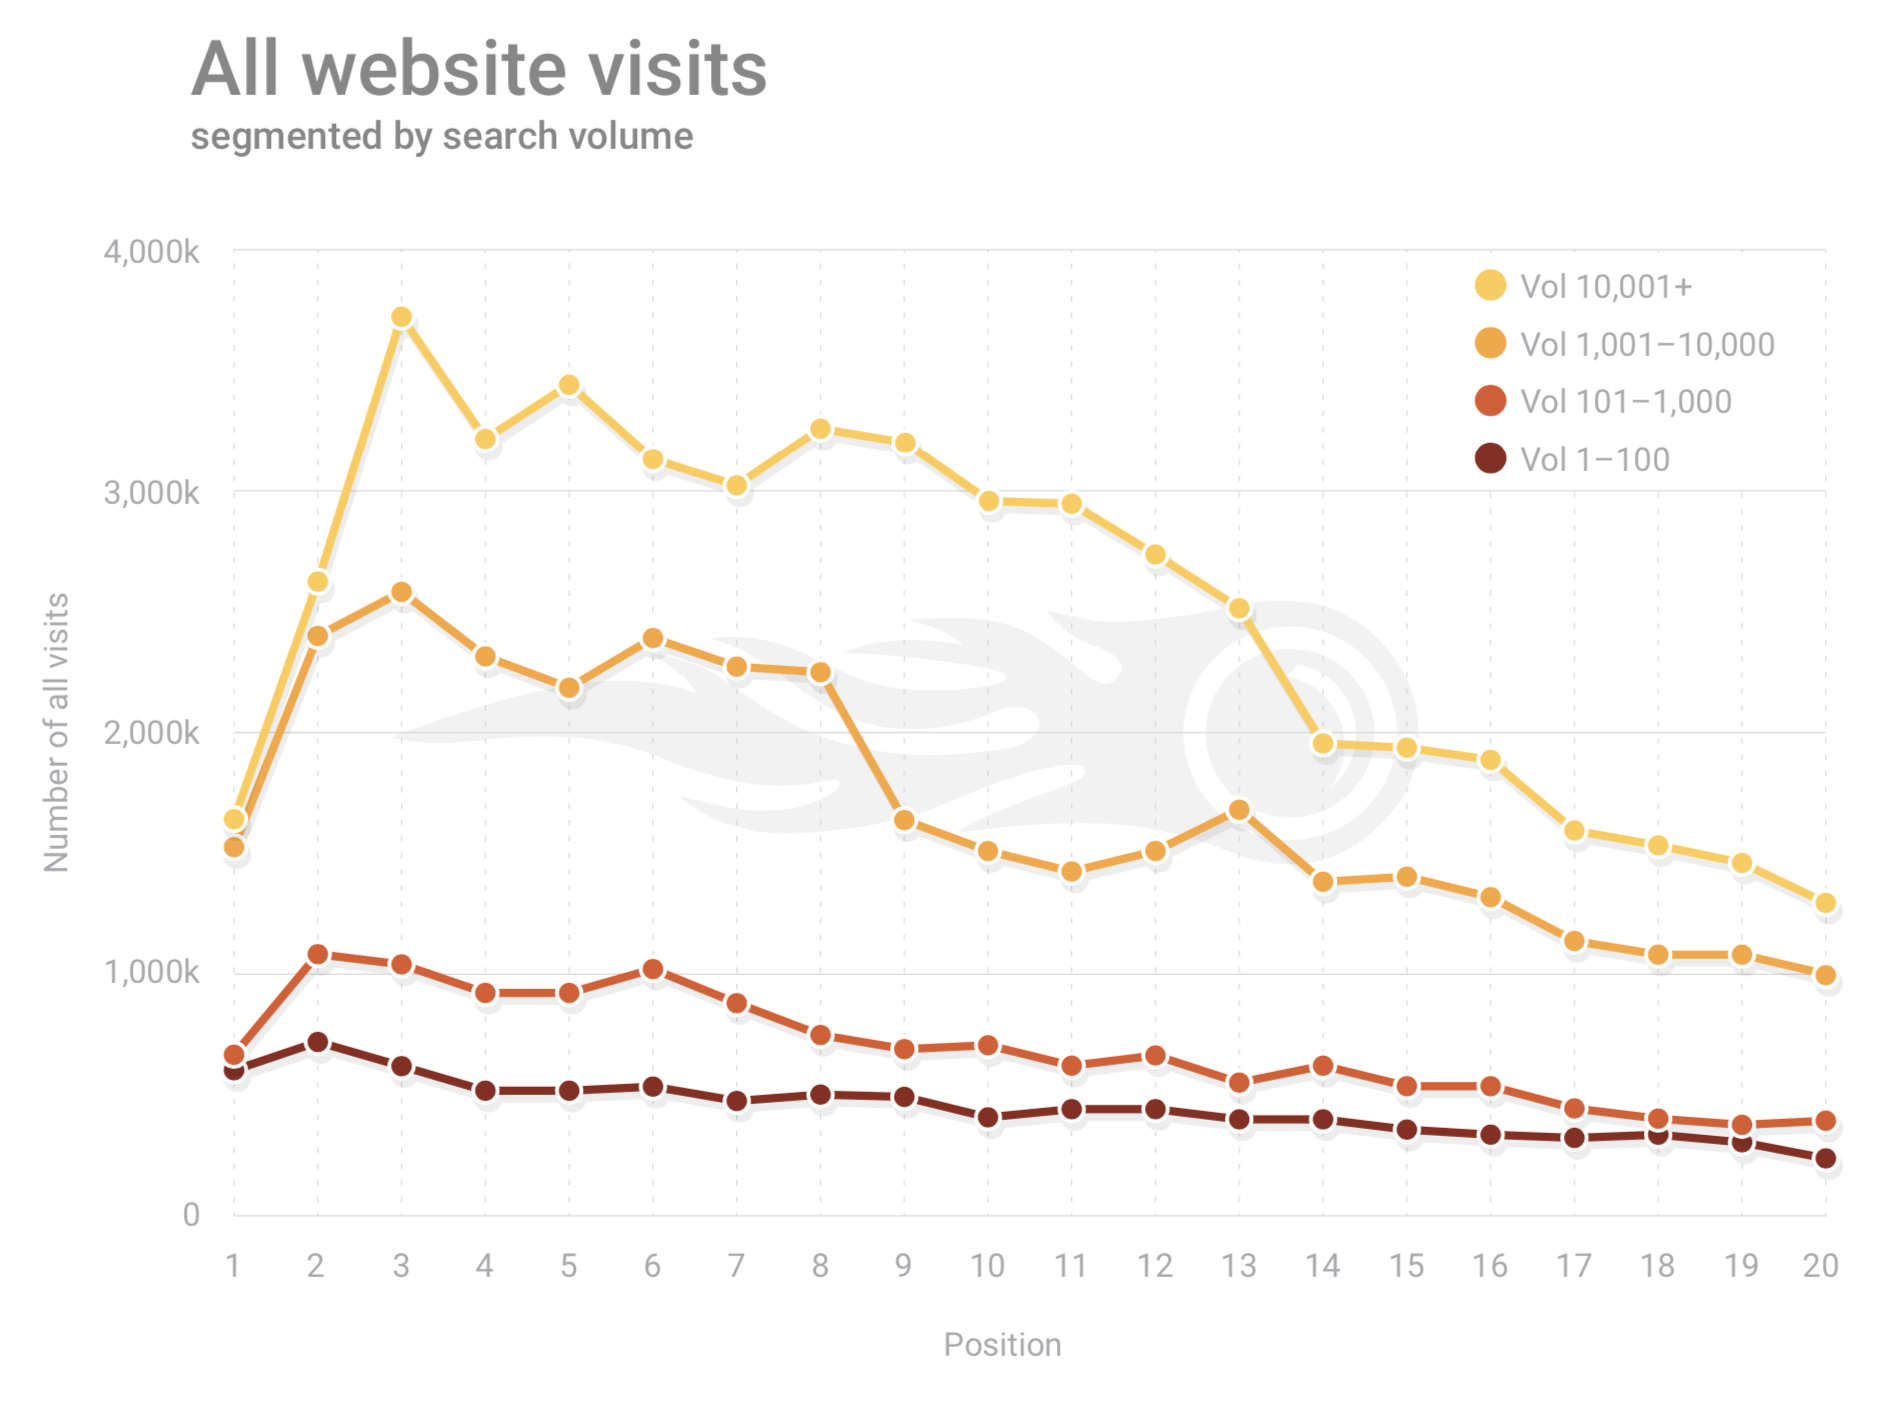 SEMRush Google all website visits 2019